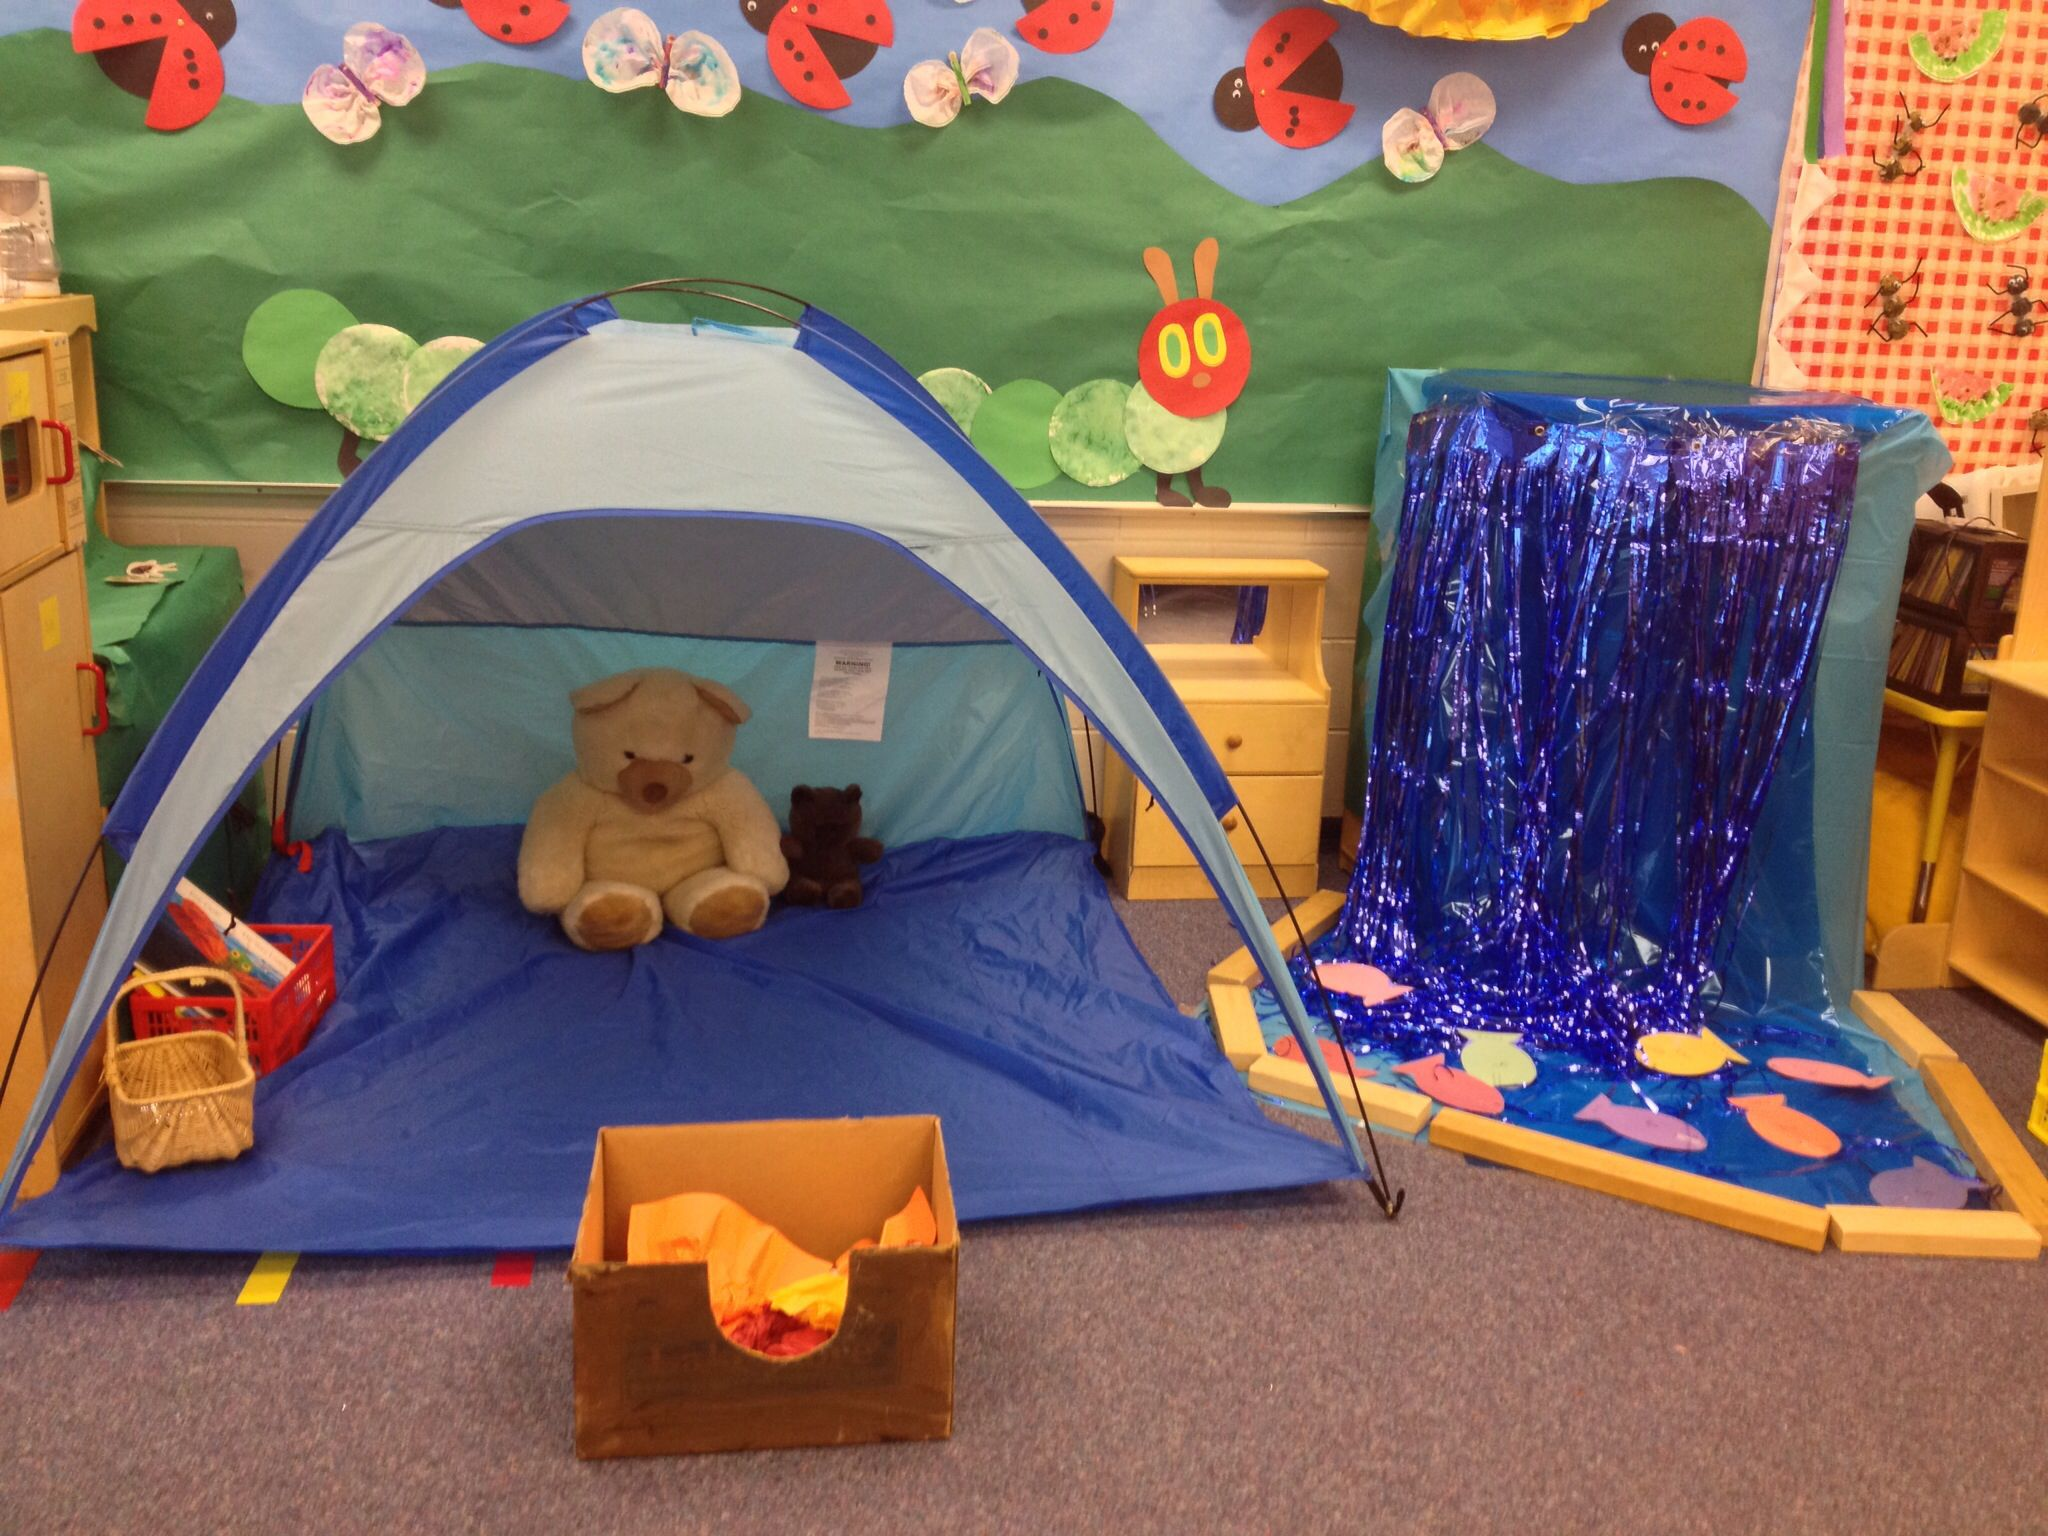 Camping Would Be A Fun Dramatic Paly Area The Children